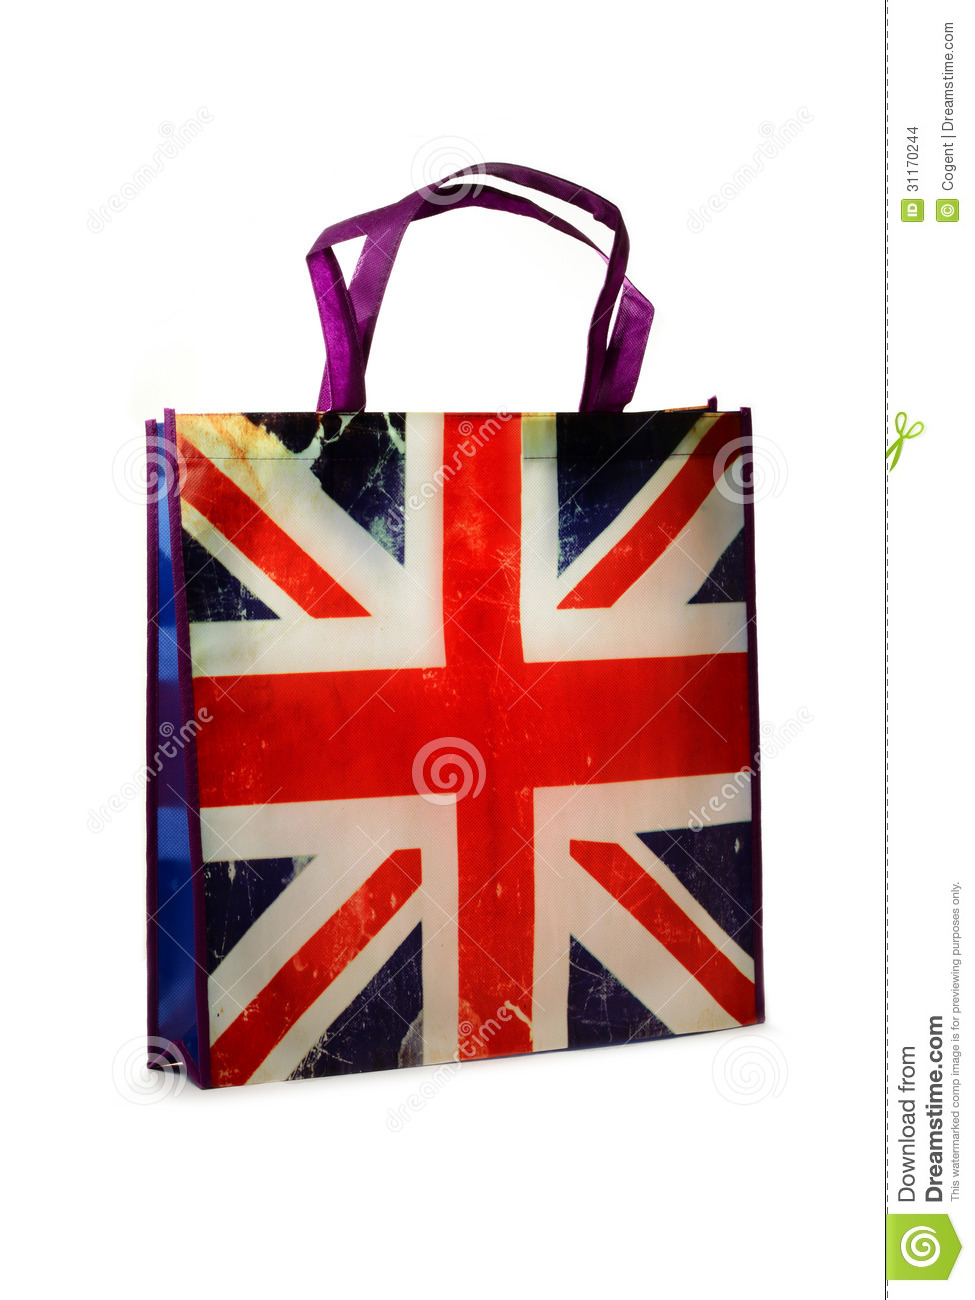 Buy British Stock Images - Image: 31170244: dreamstime.com/stock-images-buy-british-backlit-flag-union-jack...